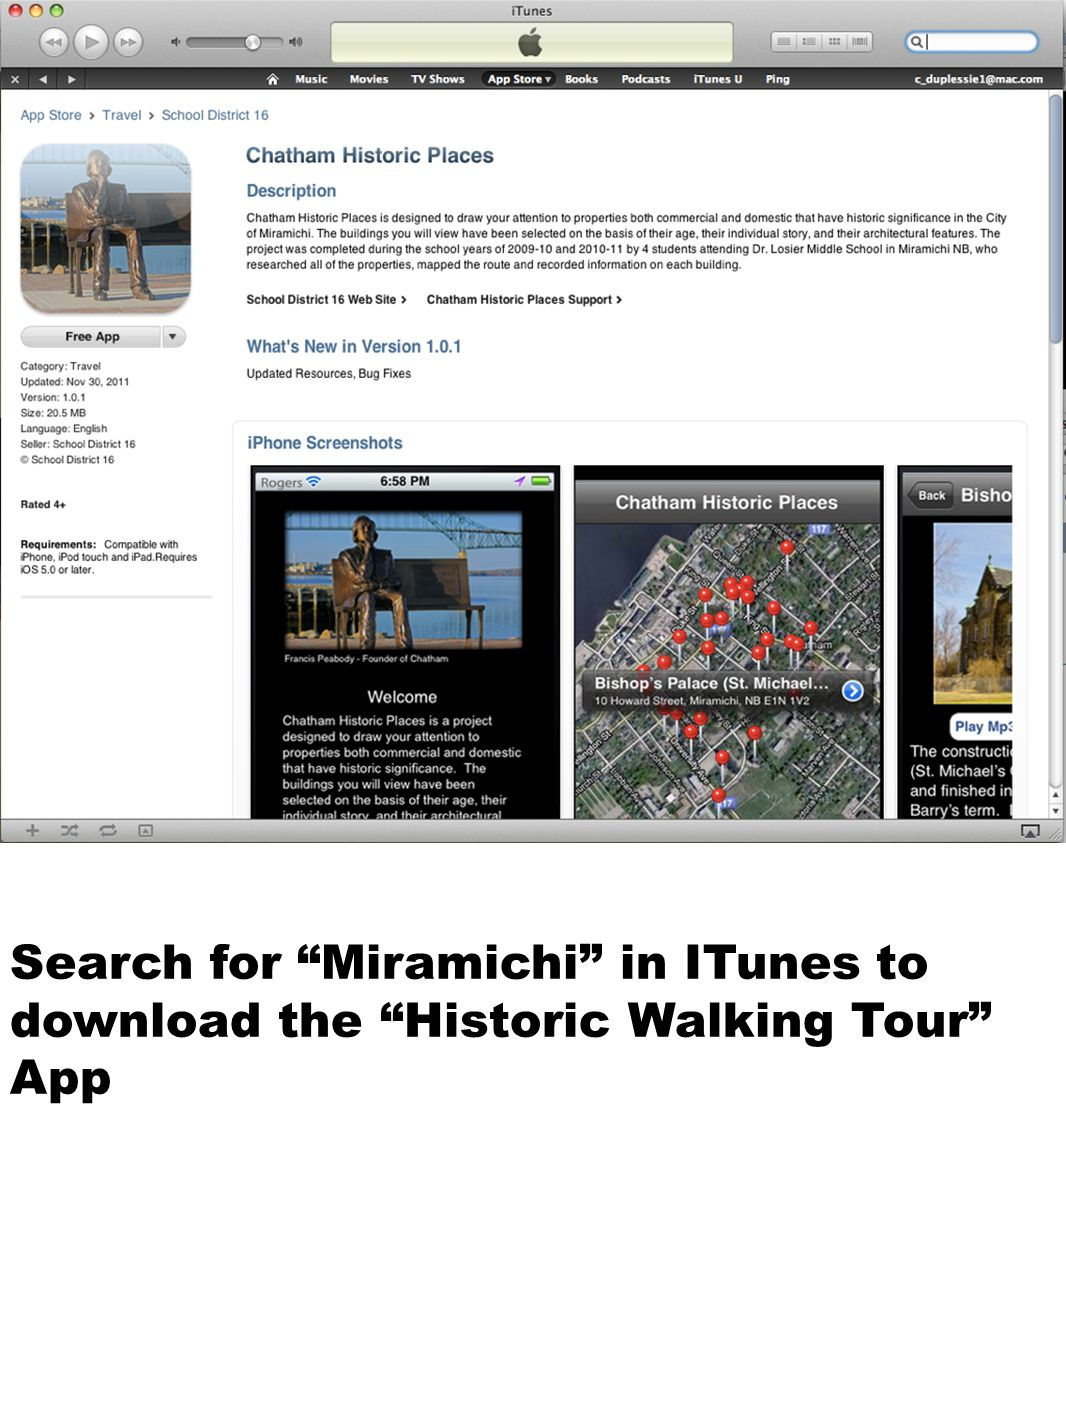 Search for Miramichi in ITunes to download the Historic Walking Tour App